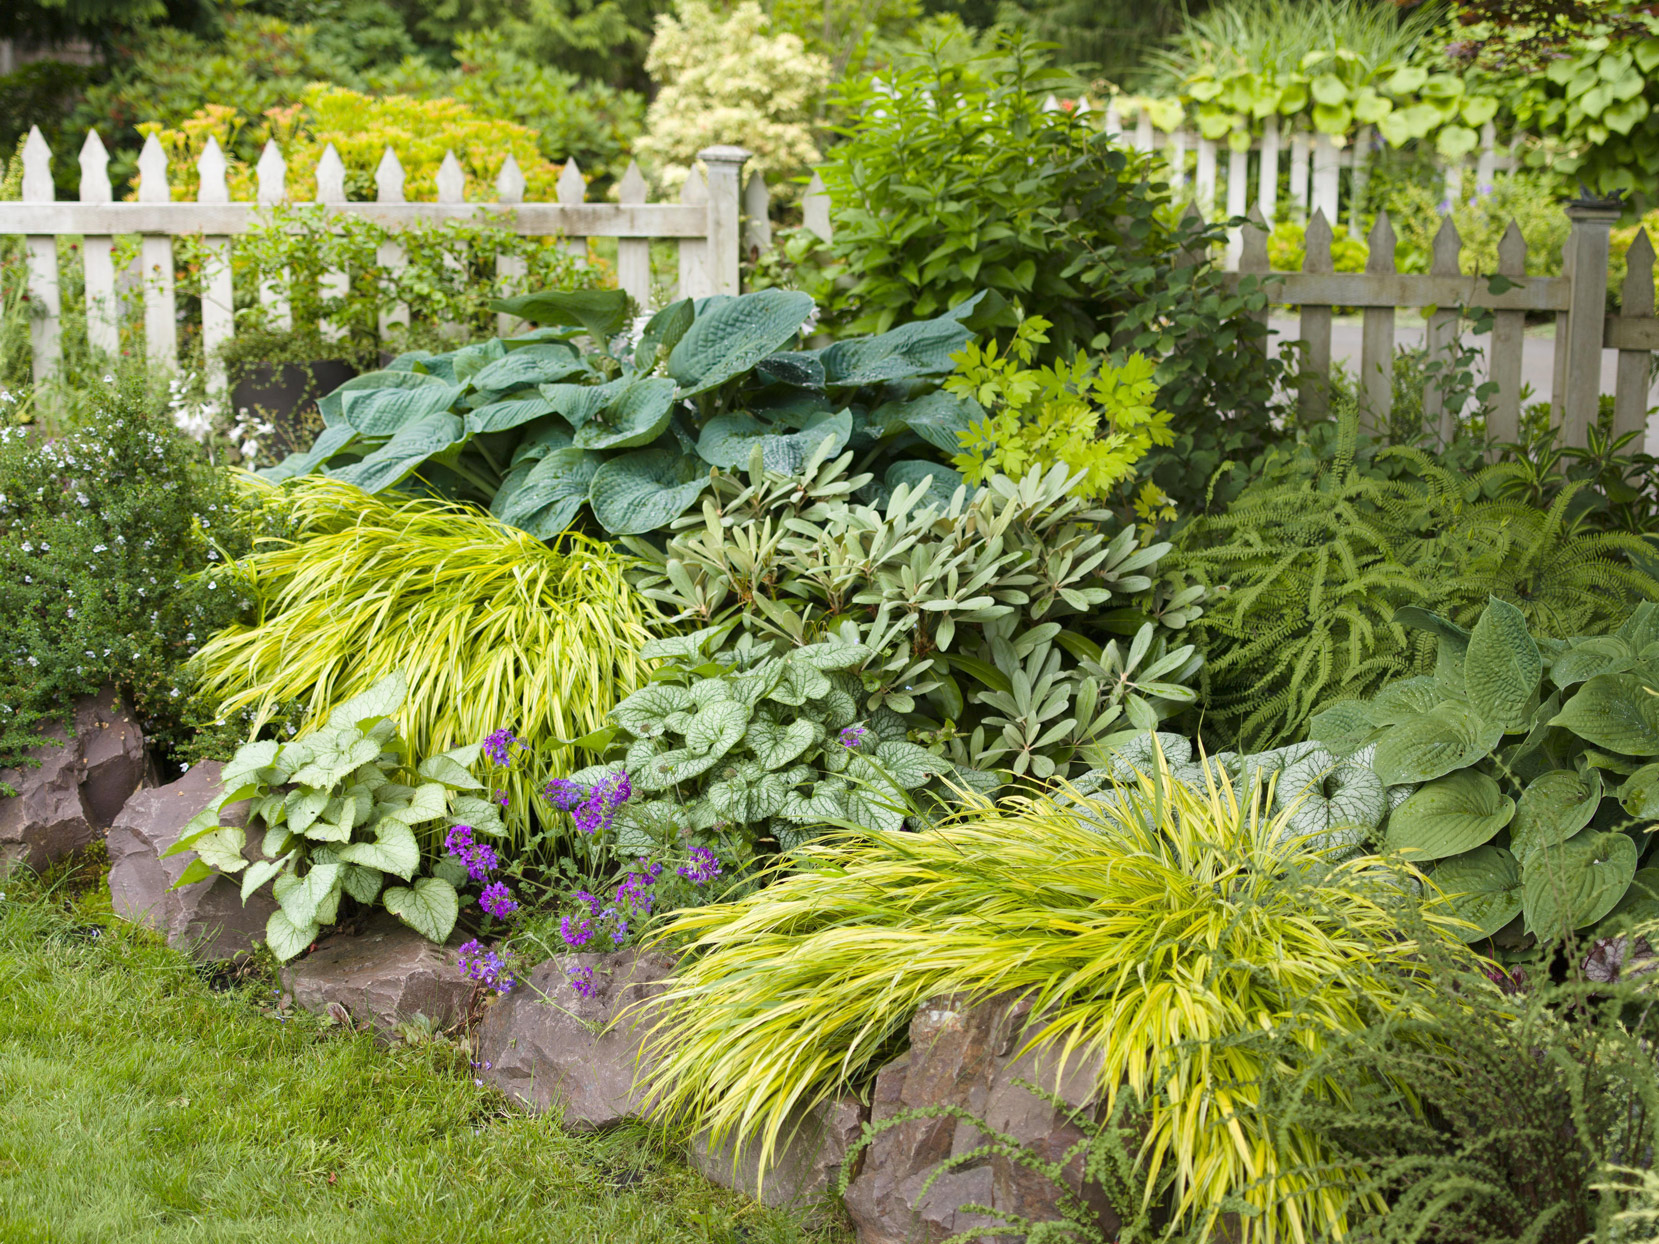 Curb Appeal in a Day: Renew Planter Beds